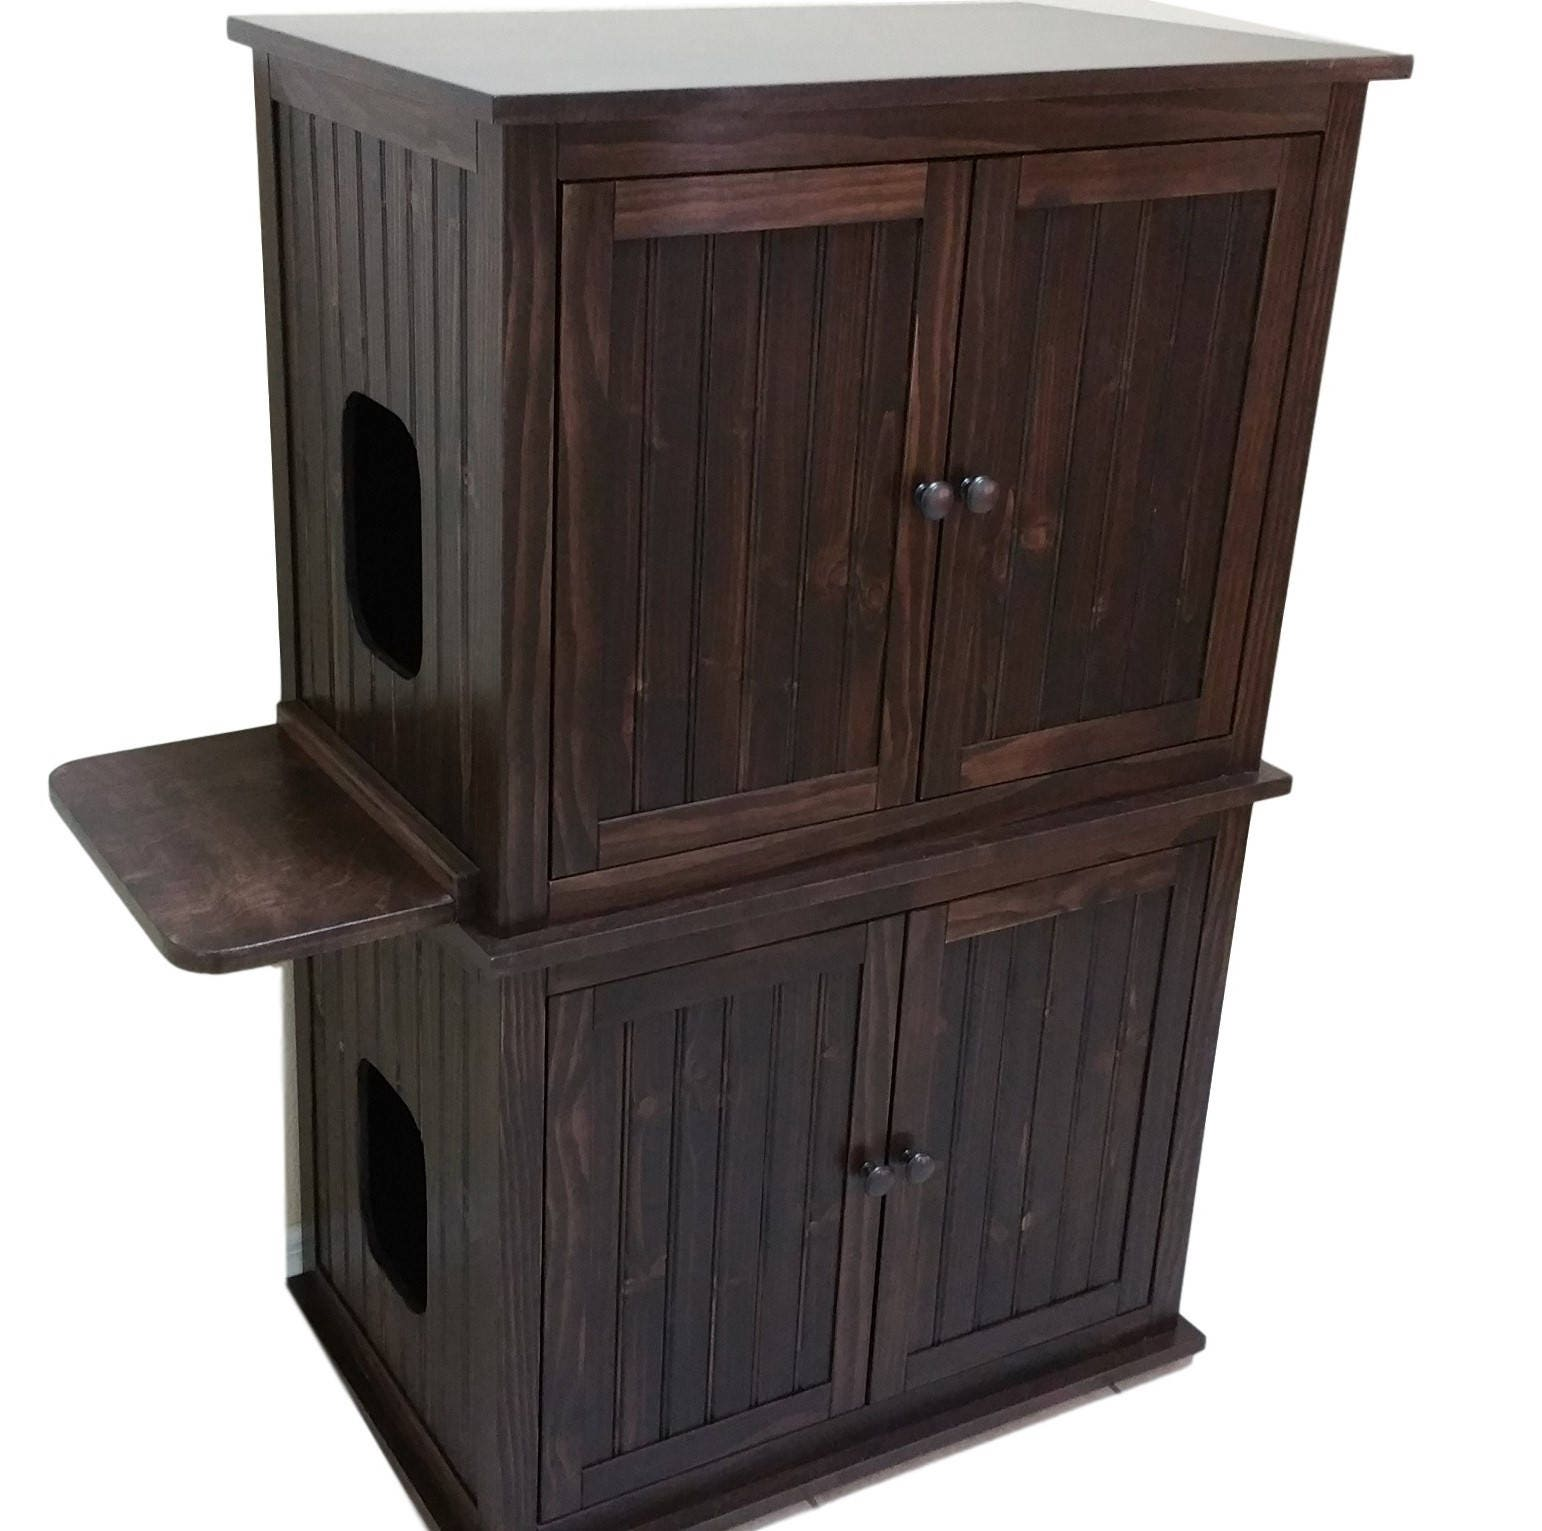 stacked double odor free custom hand made in usa wood cat litter box cabinet beaded panels not mdf